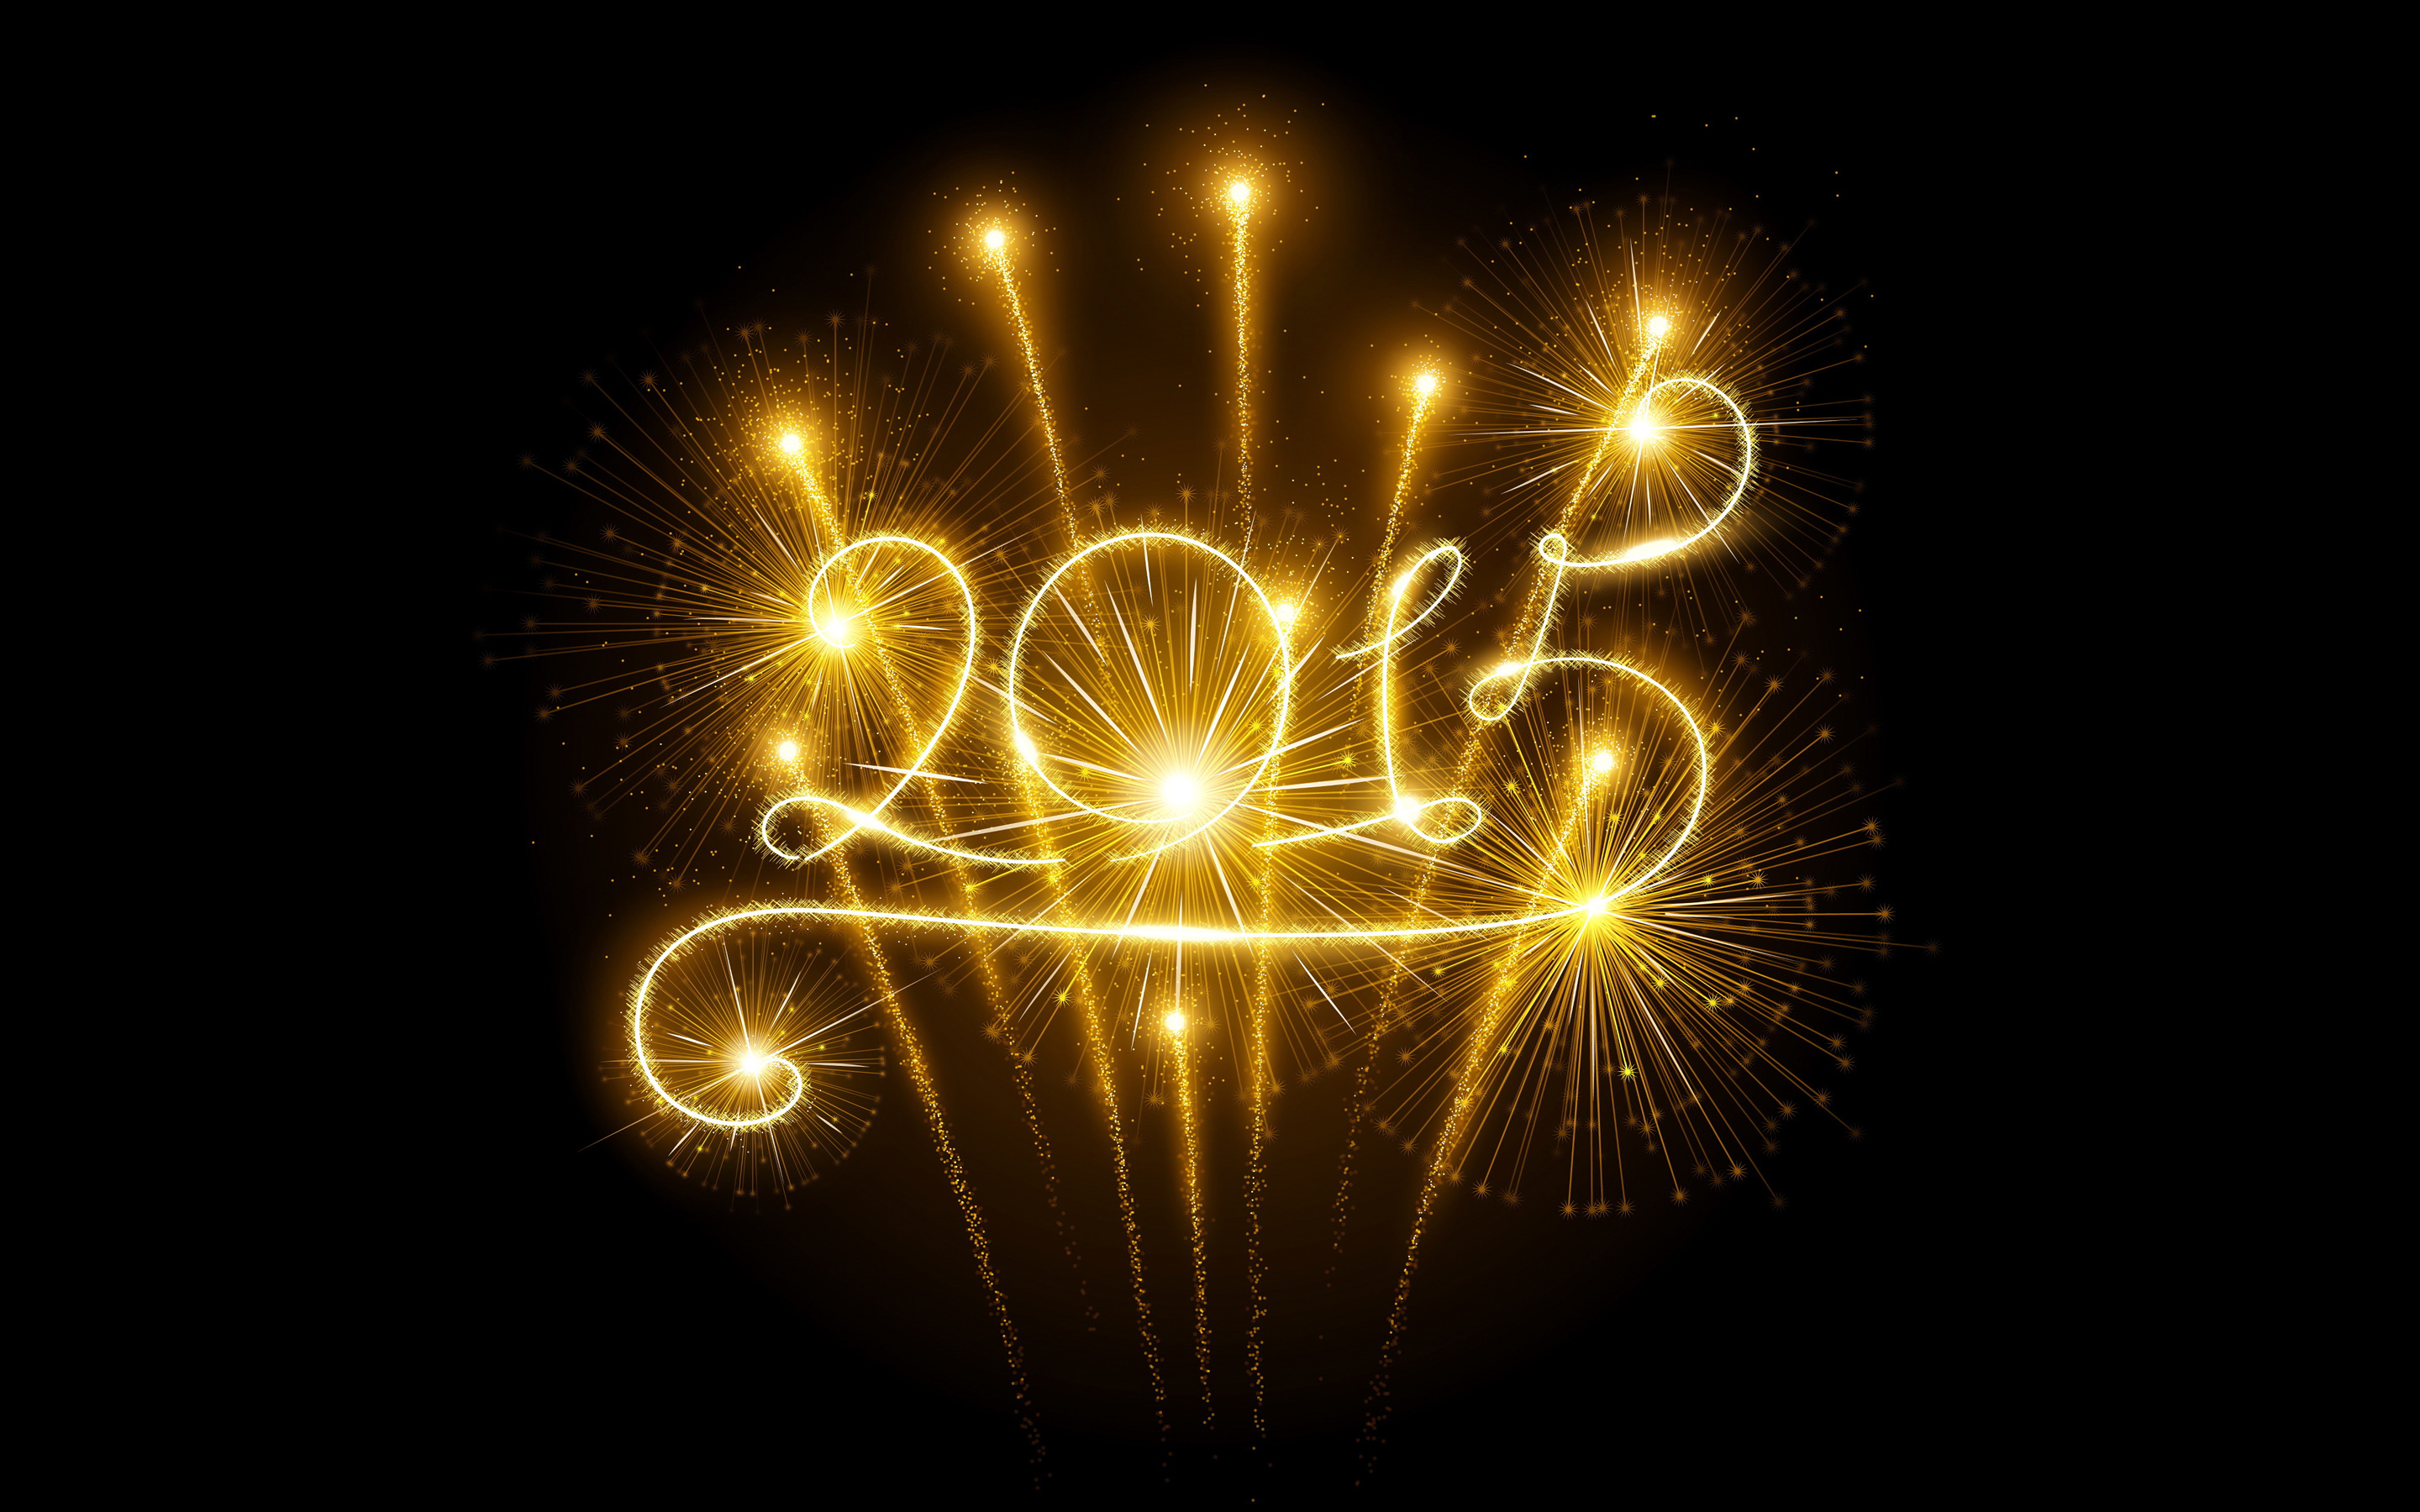 HD Wallpapers 2015 Happy New Year